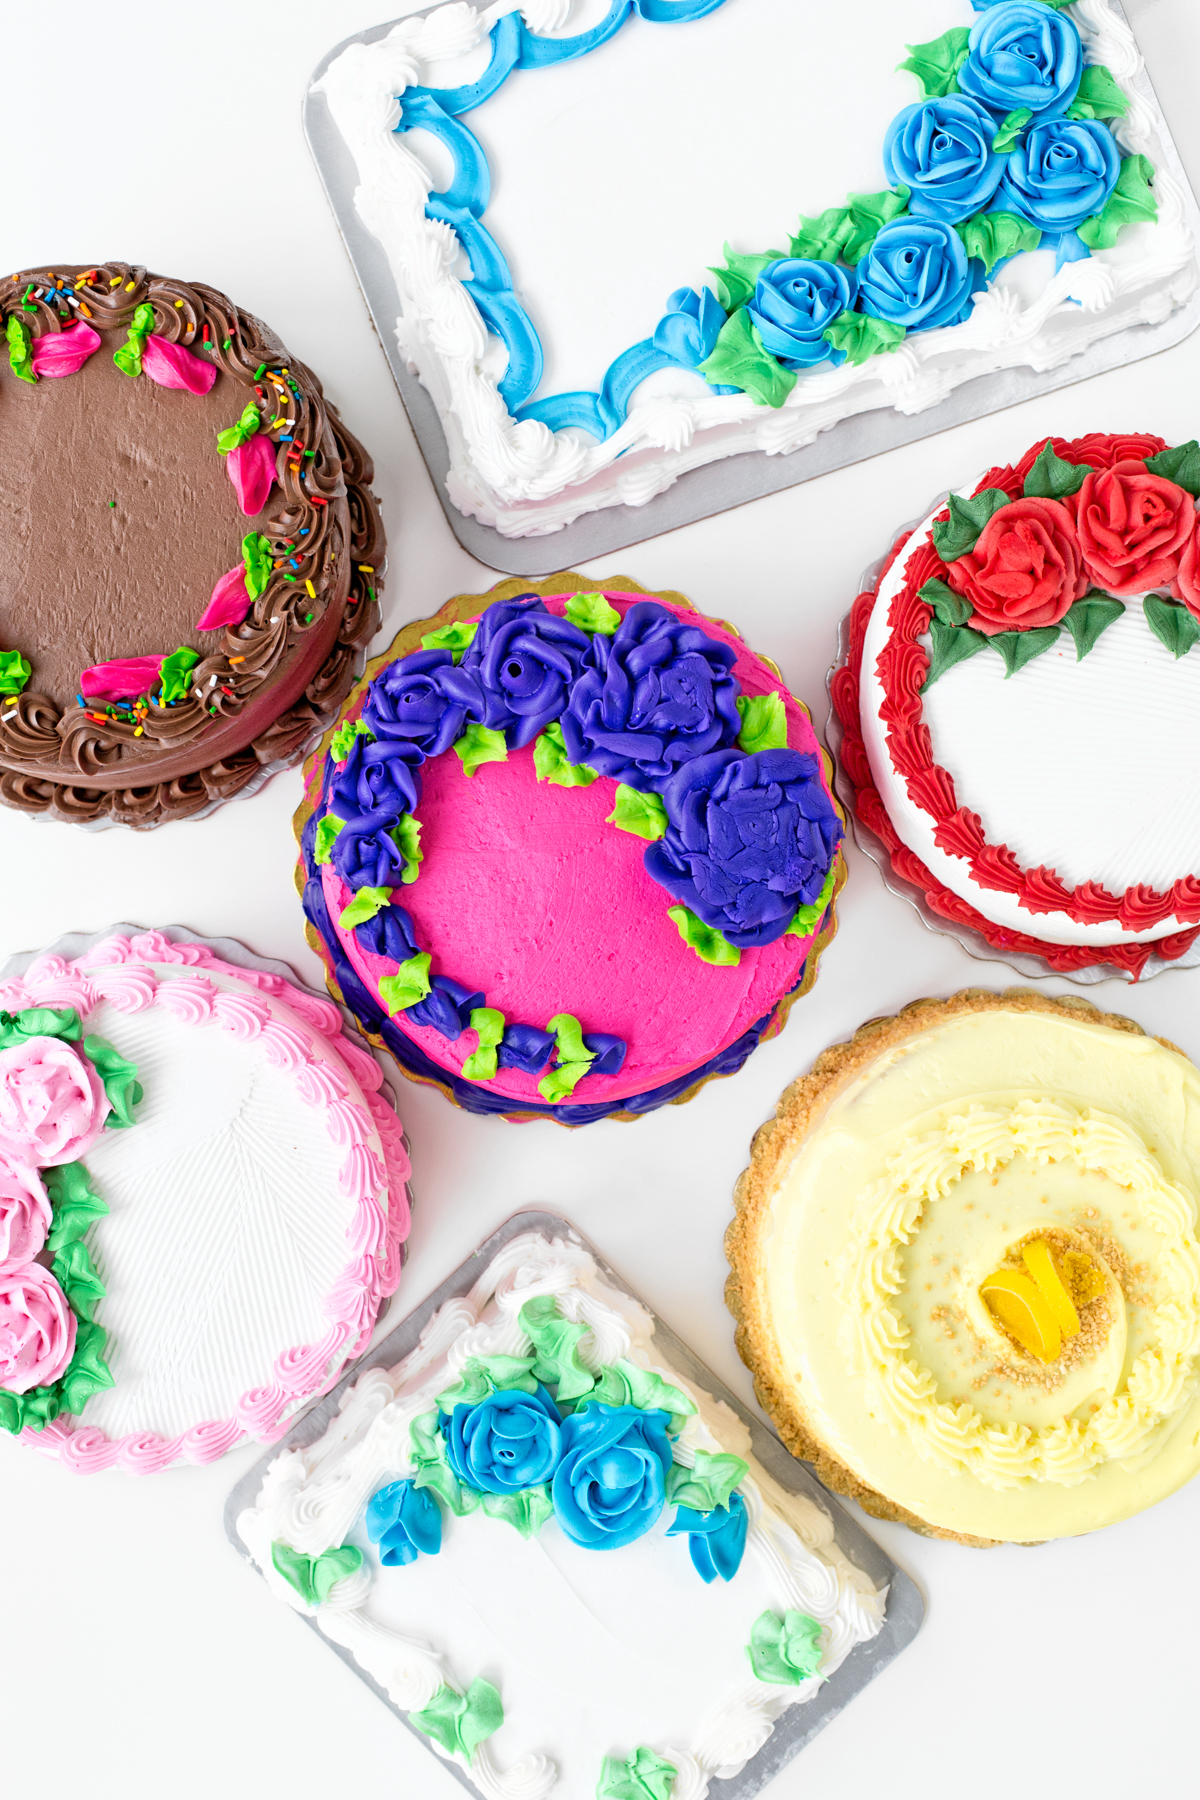 8 Grocery Store Bought Birthday Cakes Photo Cake Grocery Store